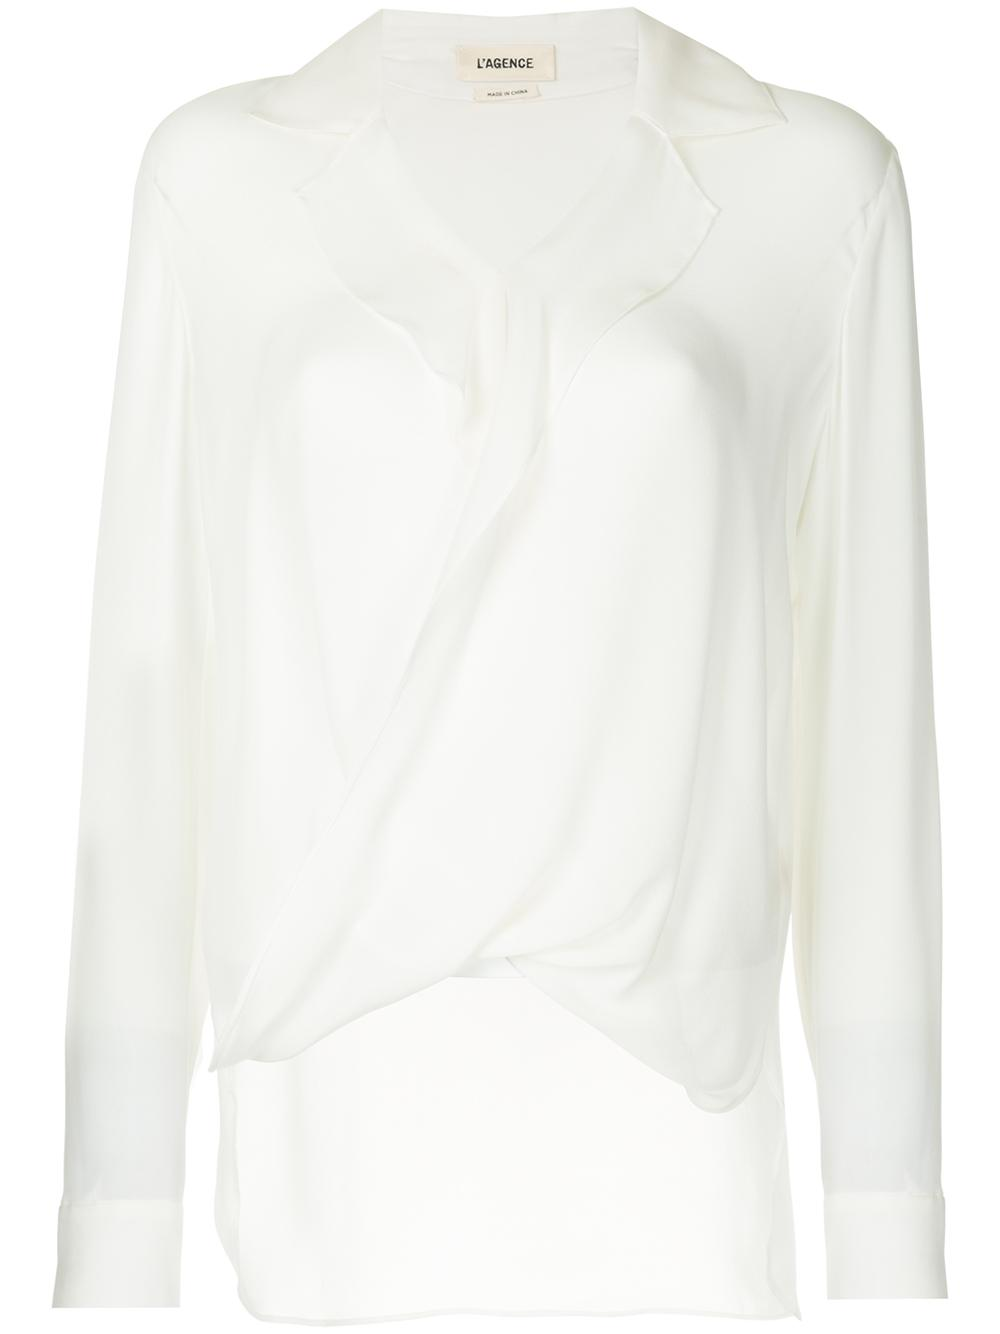 Rita Drape Front Blouse With Lapel Item # 4645 GG